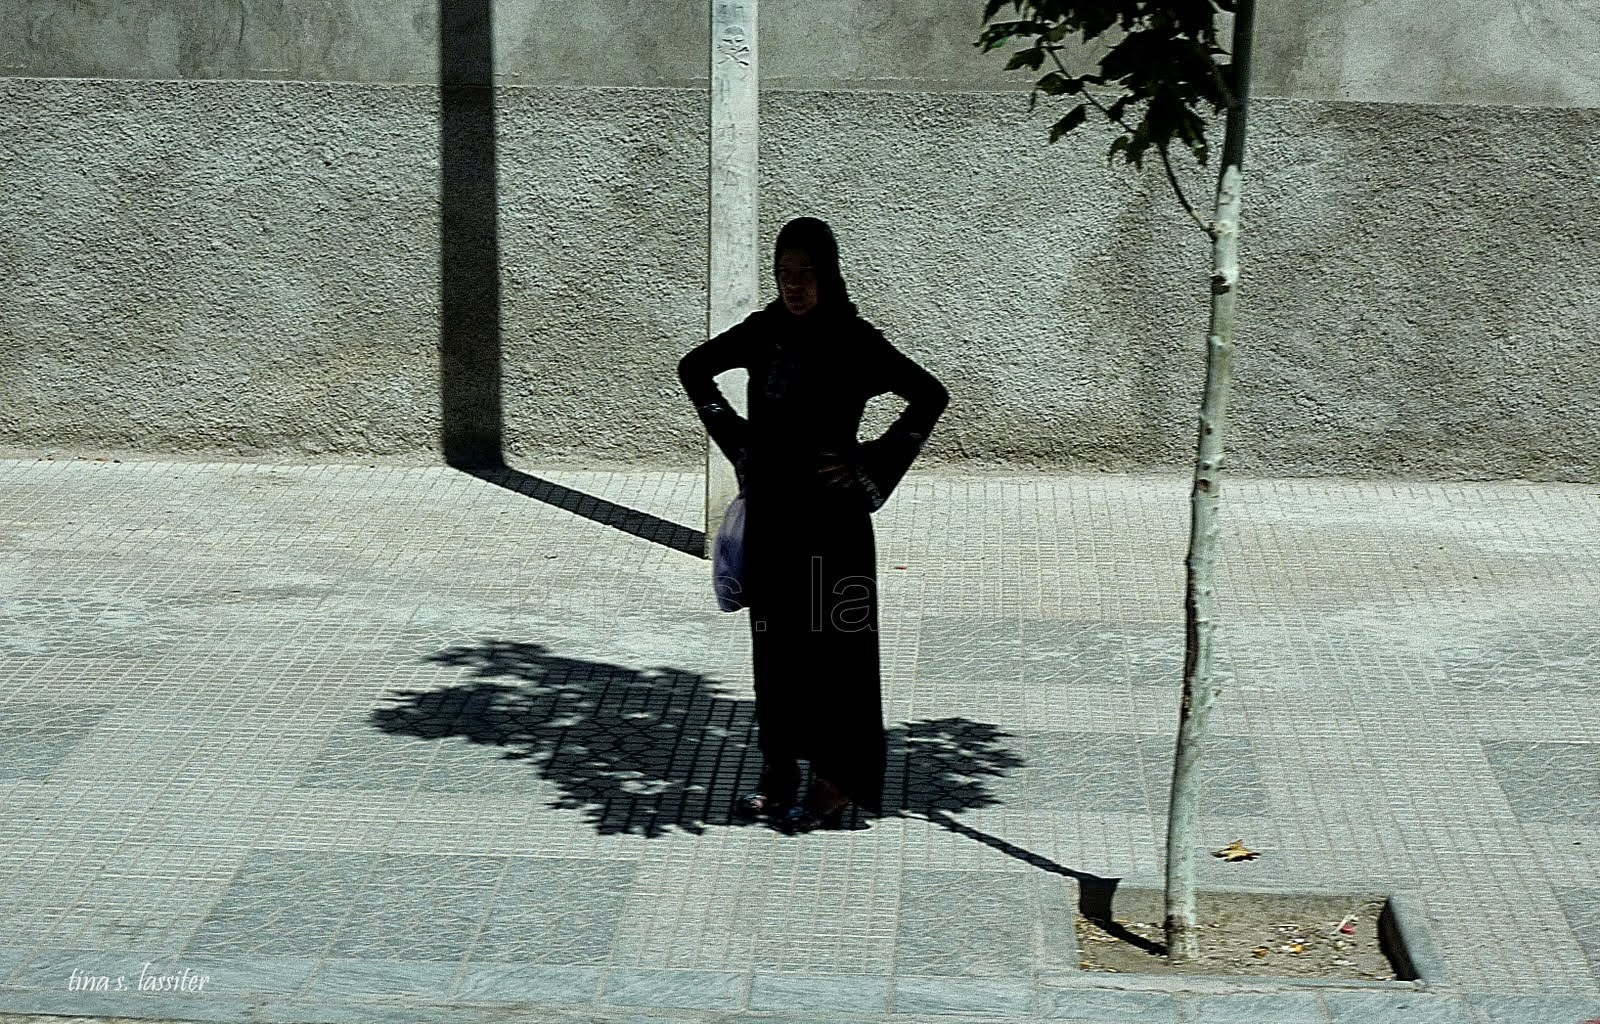 waiting for bus (maroc)